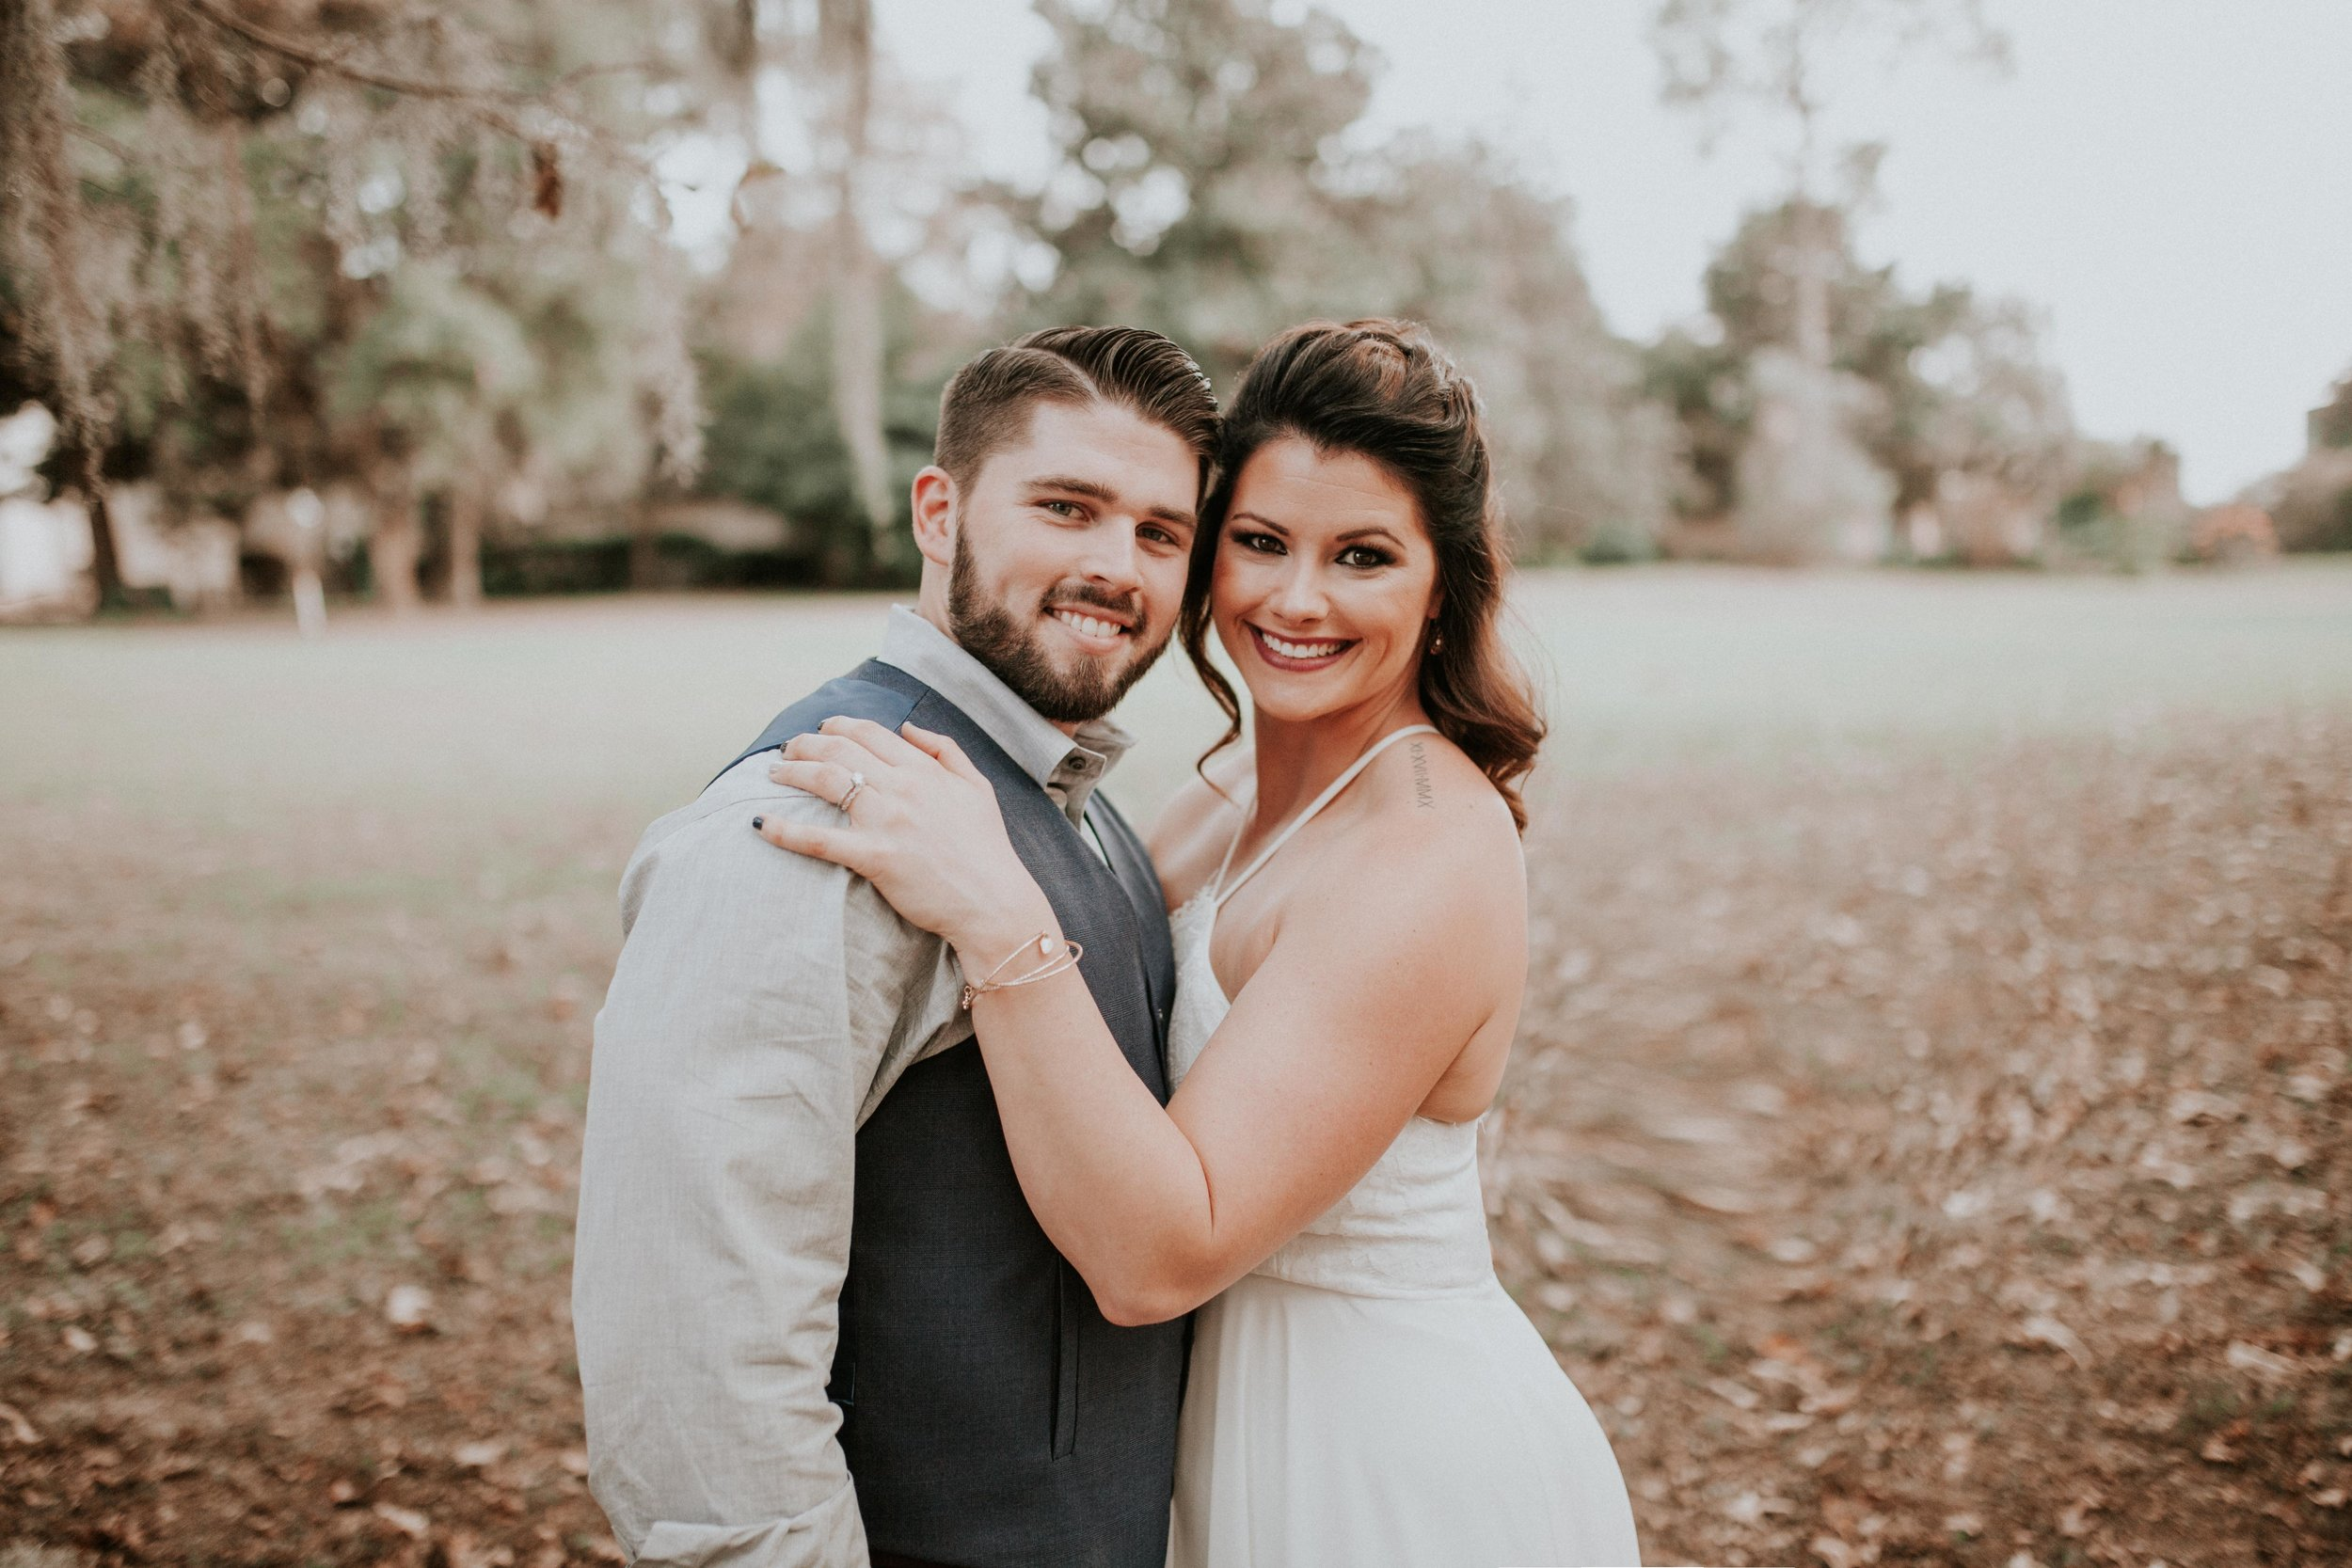 Vow Renewal in Magnolia Texas - Madeleine Frost Wedding Photographer - Sized for Blog-49.jpg